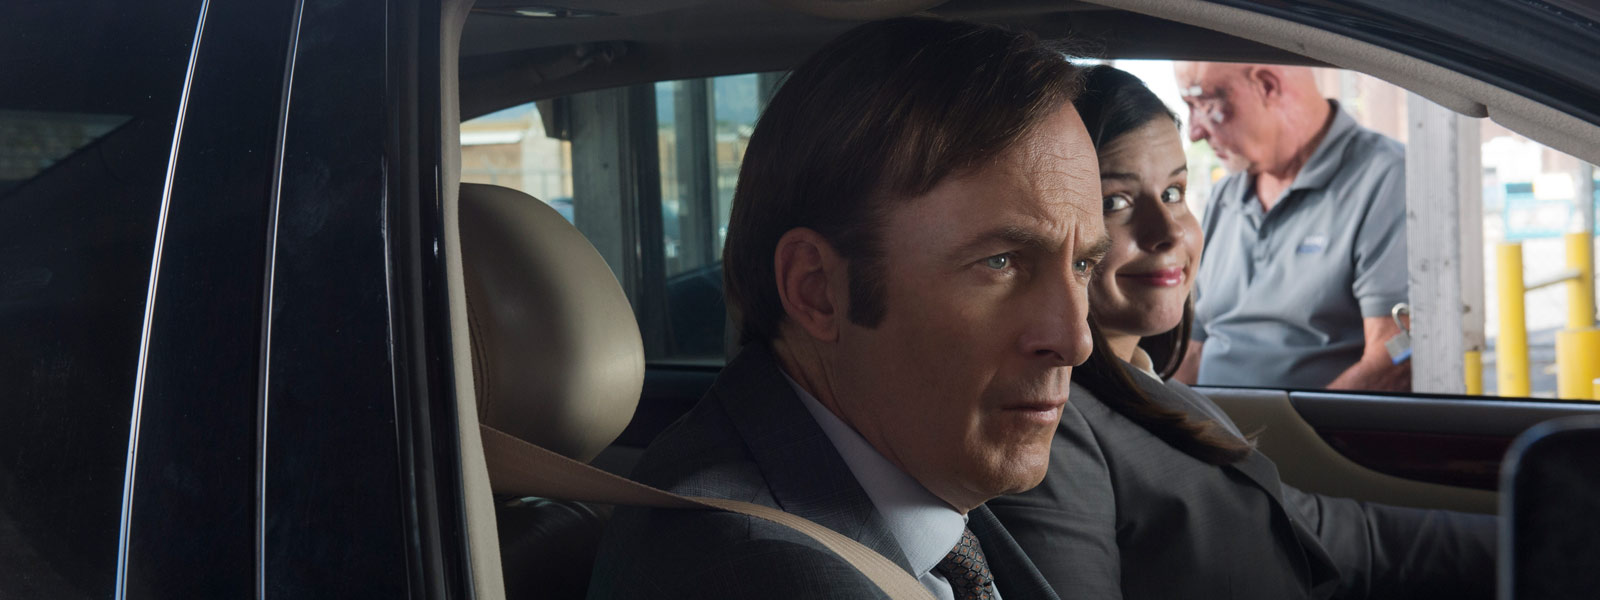 better-call-saul-episode-205-jimmy-odenkirk-erin-ennis-mike-banks-post-800×600